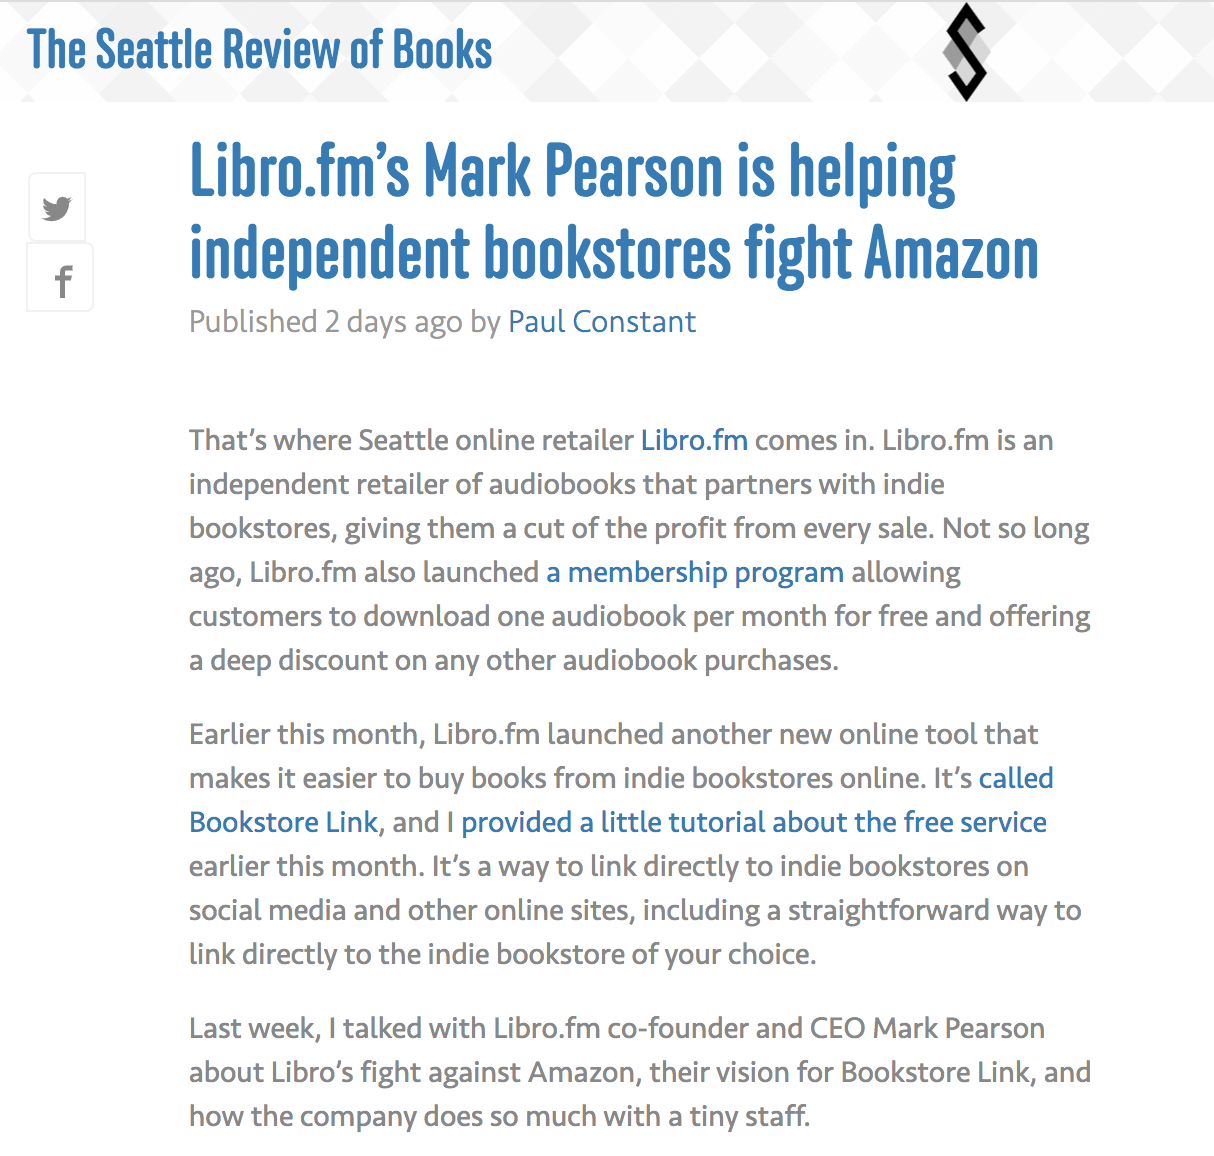 The Seattle Review of Books: Libro.fm's Mark Pearson is helping independent  bookstores fight Amazon in 2020 | Bookstore, Indie bookstore, Pearson